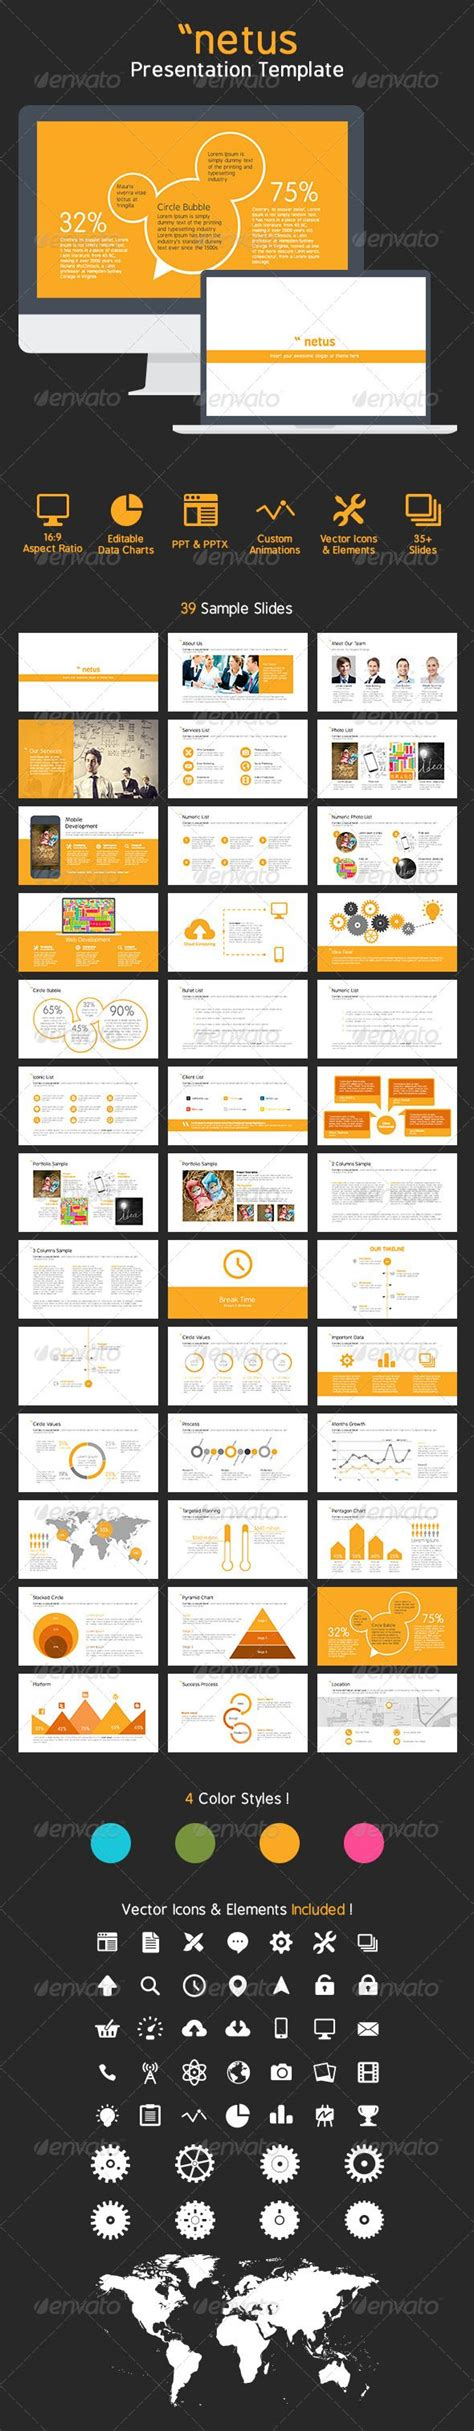 layout of a letter powerpoint netus powerpoint presentation templates powerpoint